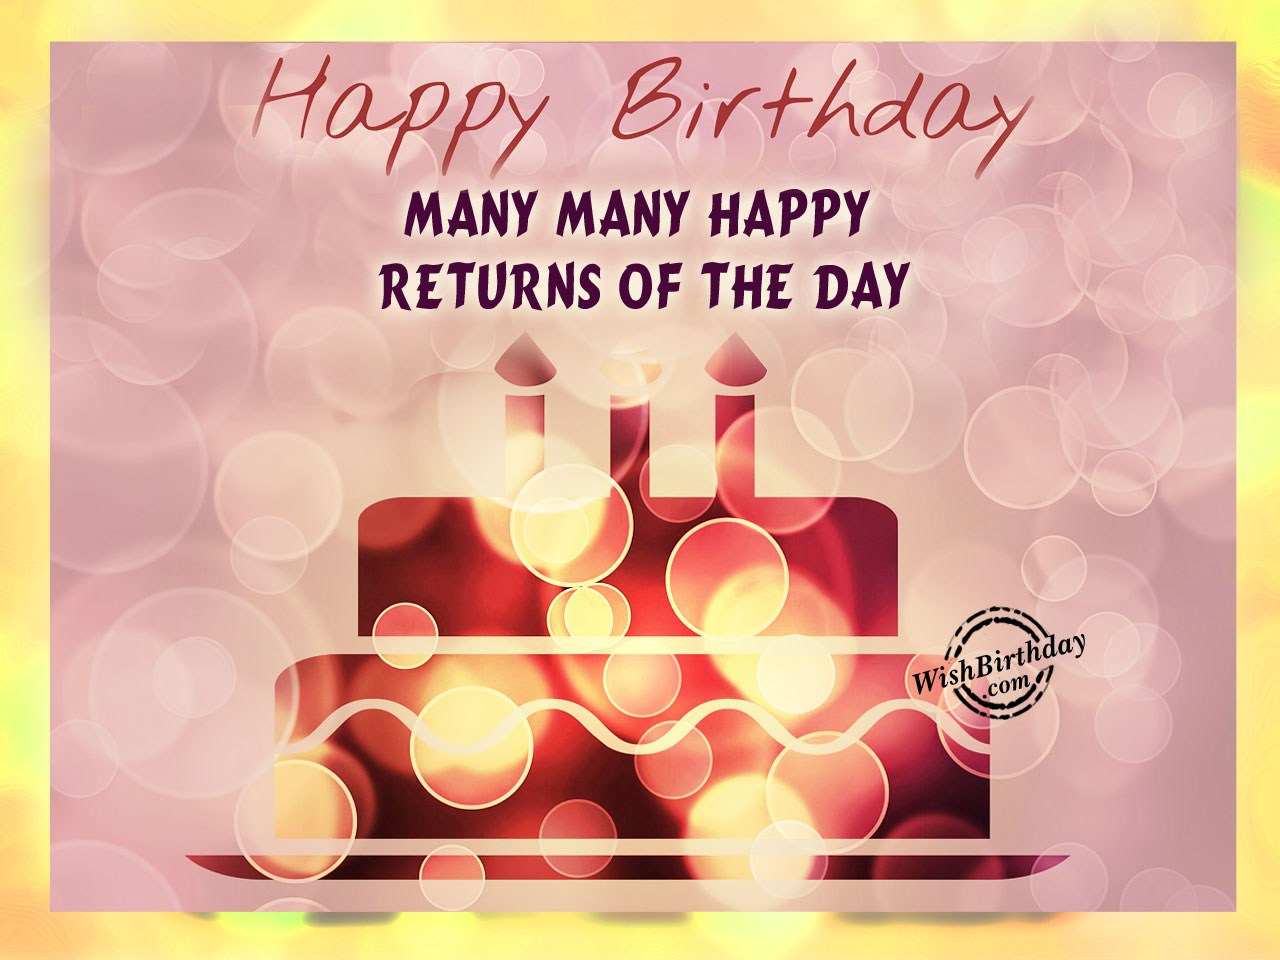 many many happy returns of the day happy birthday message ; Happy-Birthdaymany-many-happy-returns-of-the-day